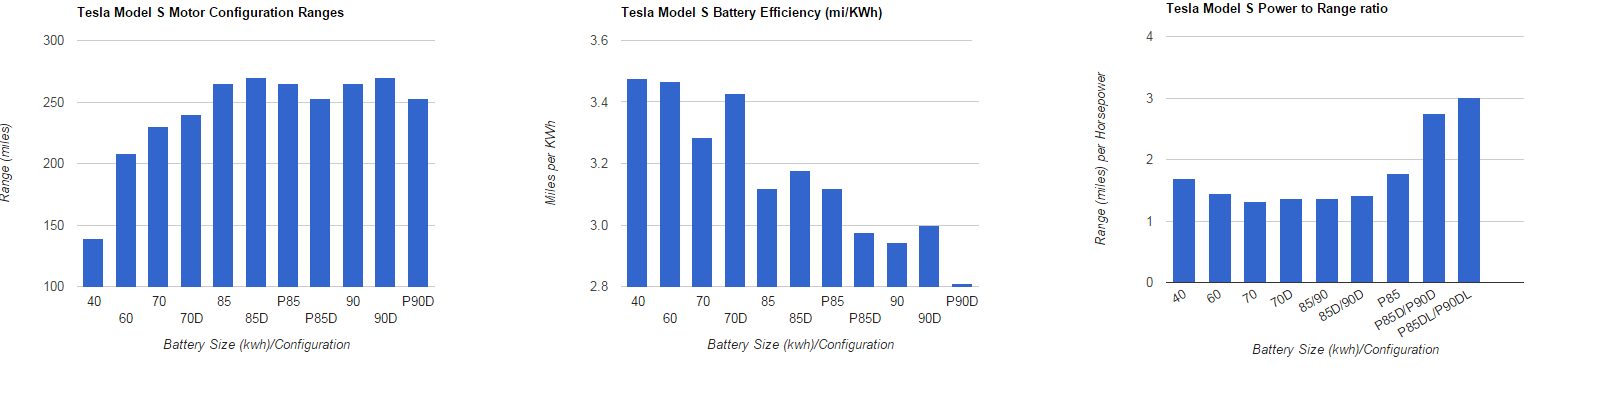 Tesla Model S Battery Specs.png